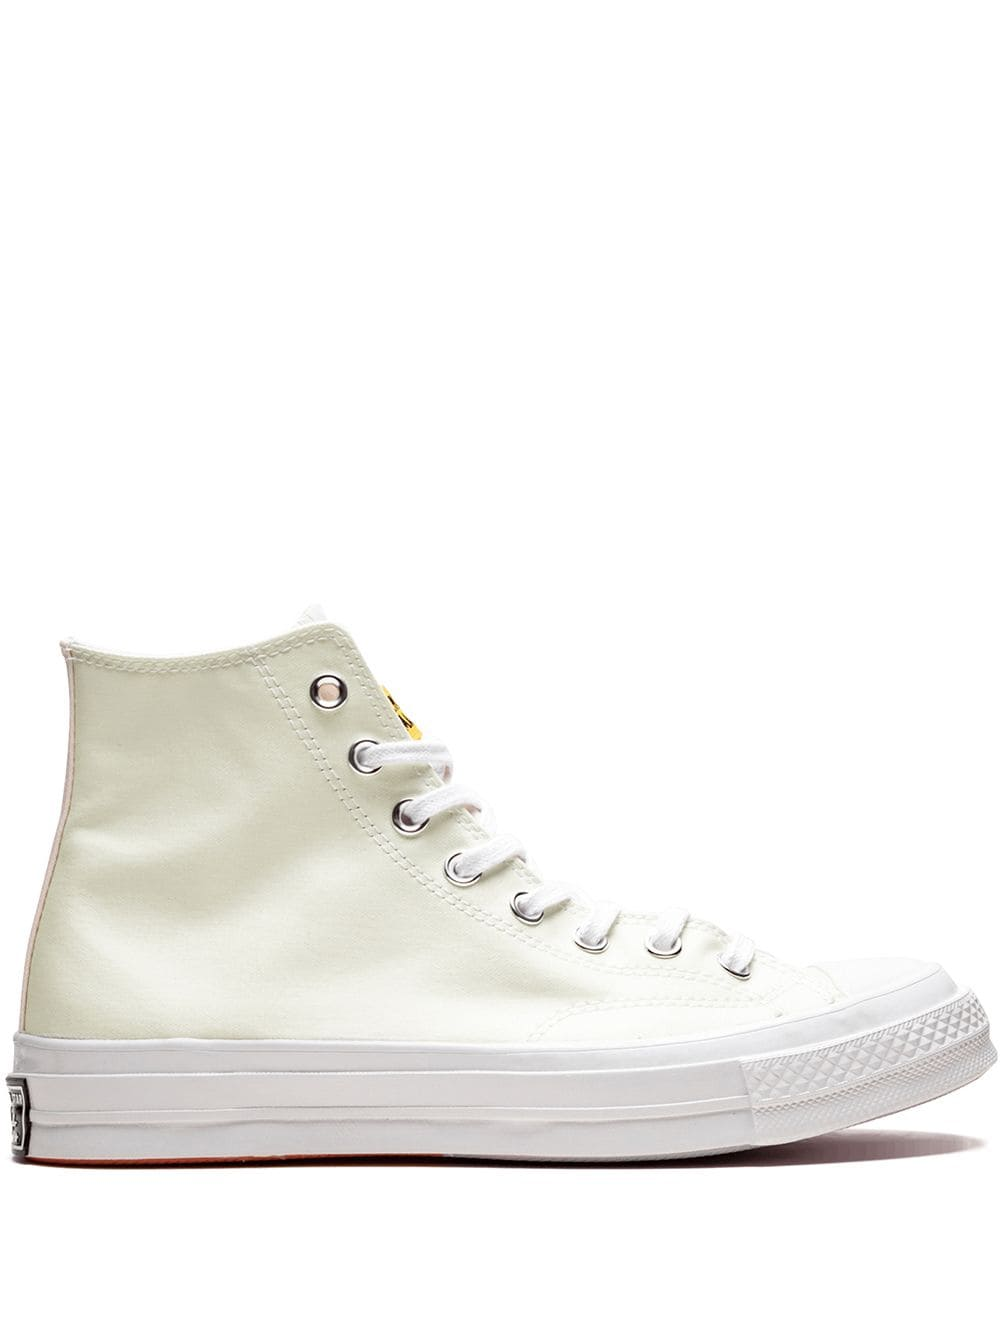 Converse All-Star 70s Hi